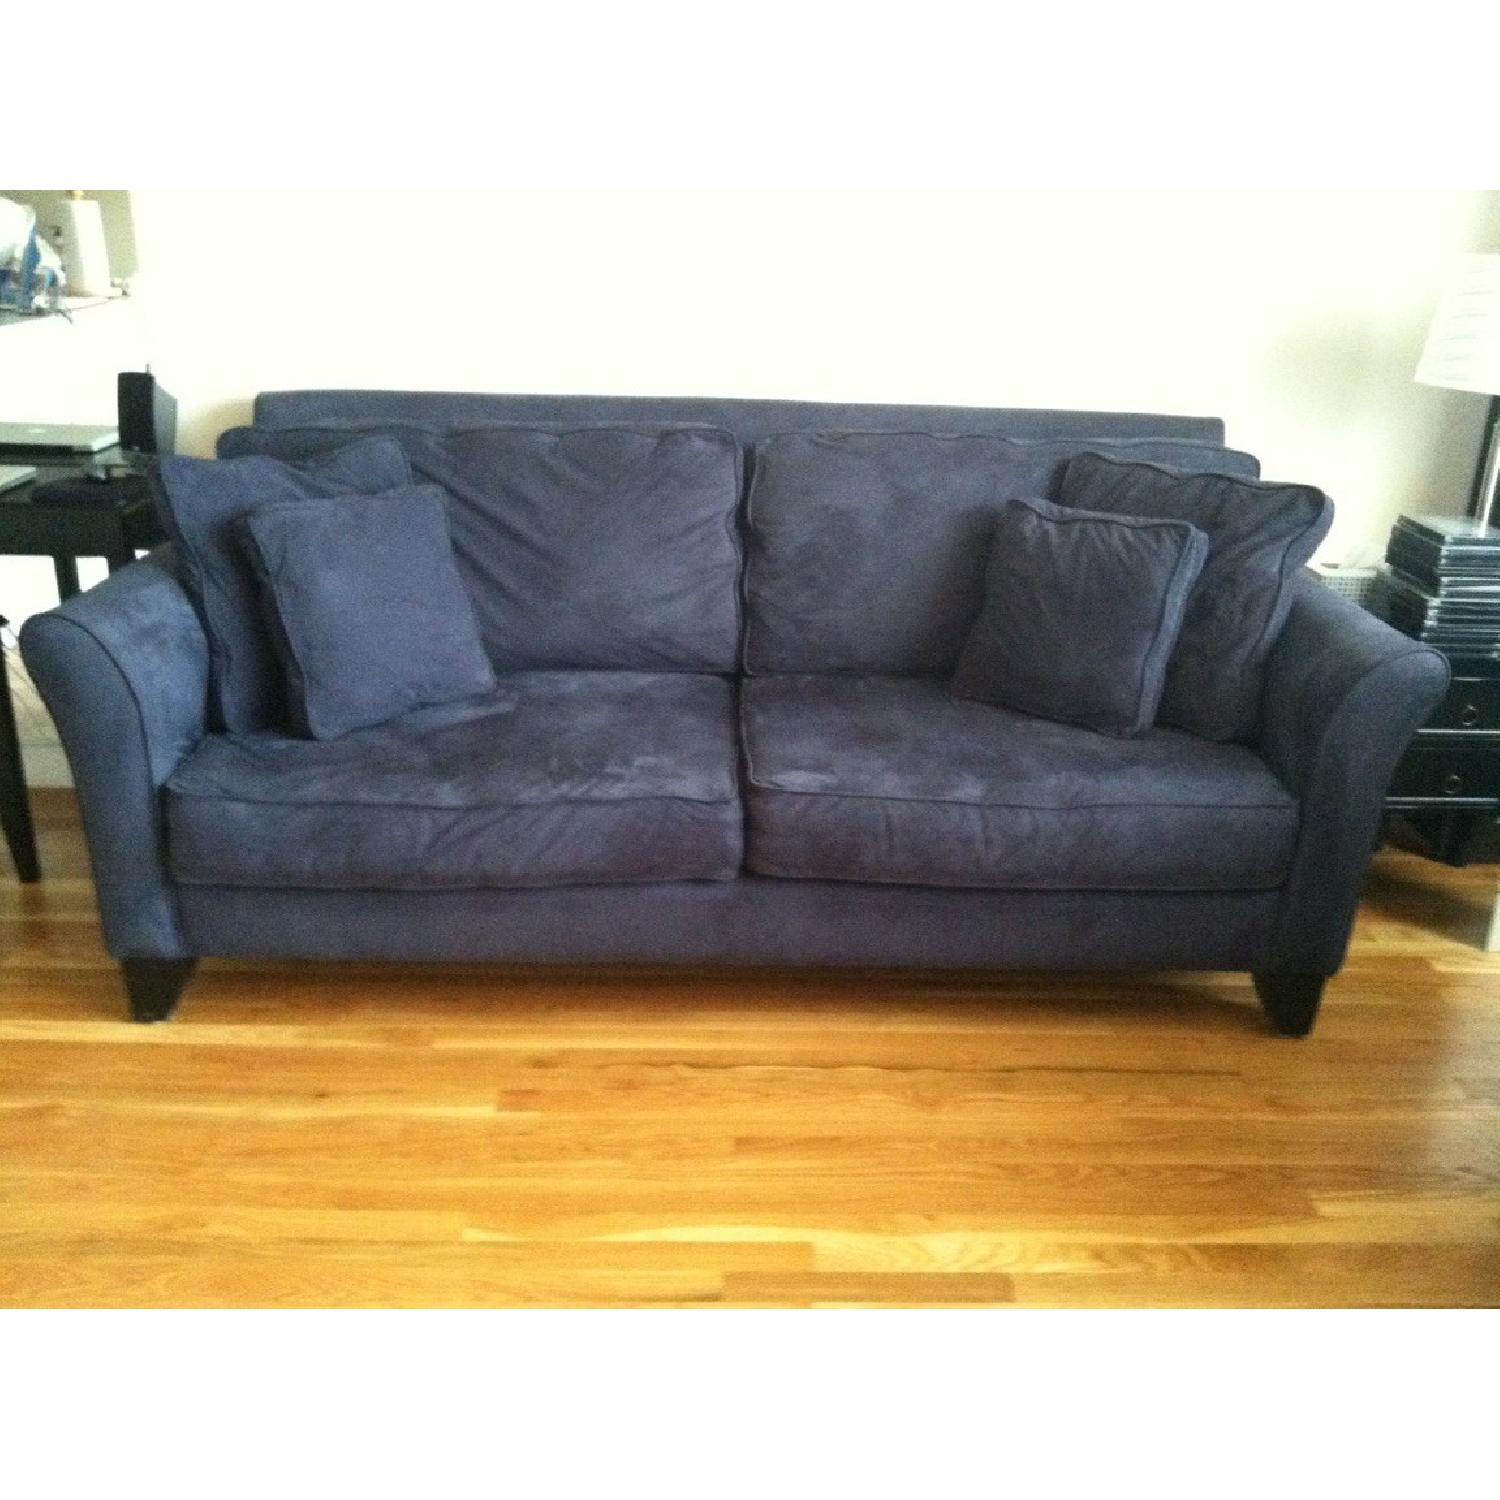 Used sofas for sale in NYC AptDeco